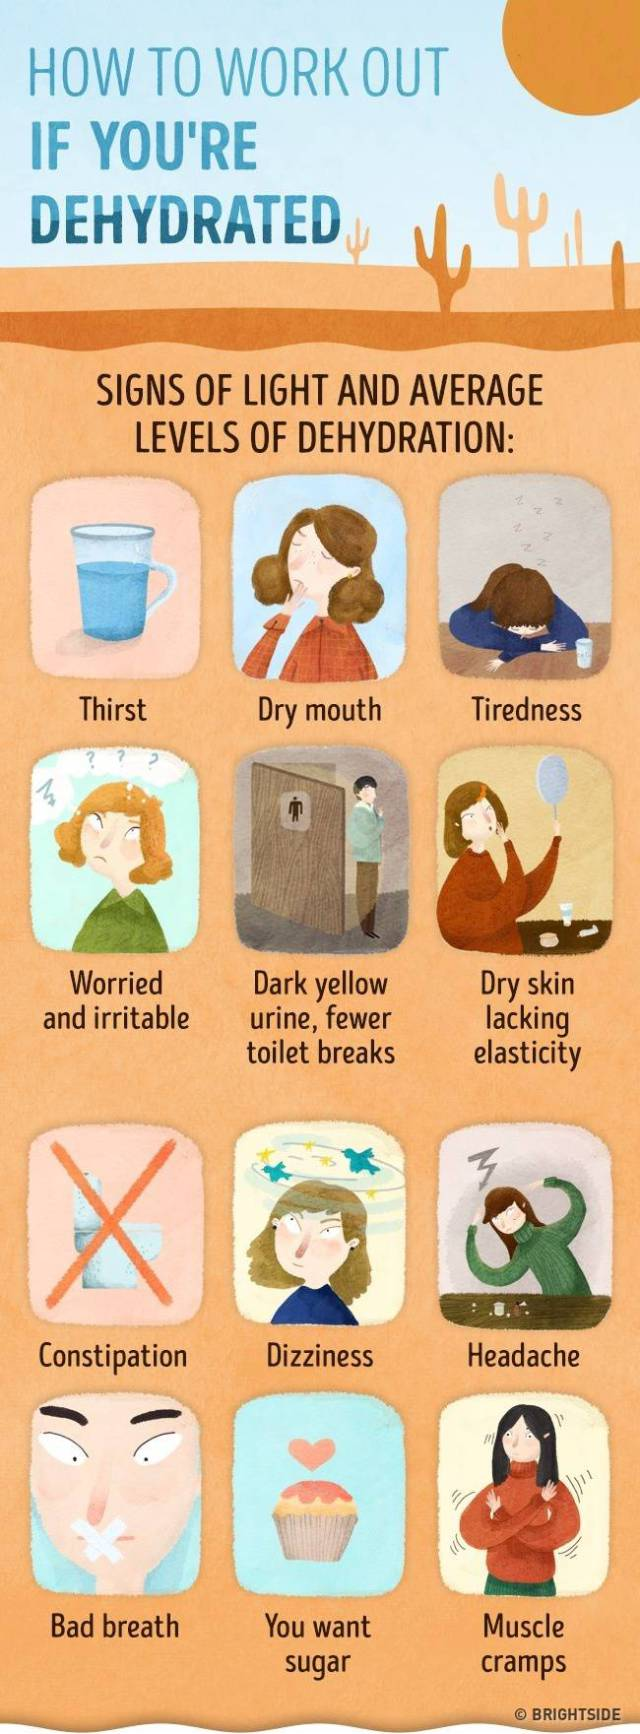 Signs Of Dehydration That Definitely Shouldn't Be Taken Lightly (4 pics)